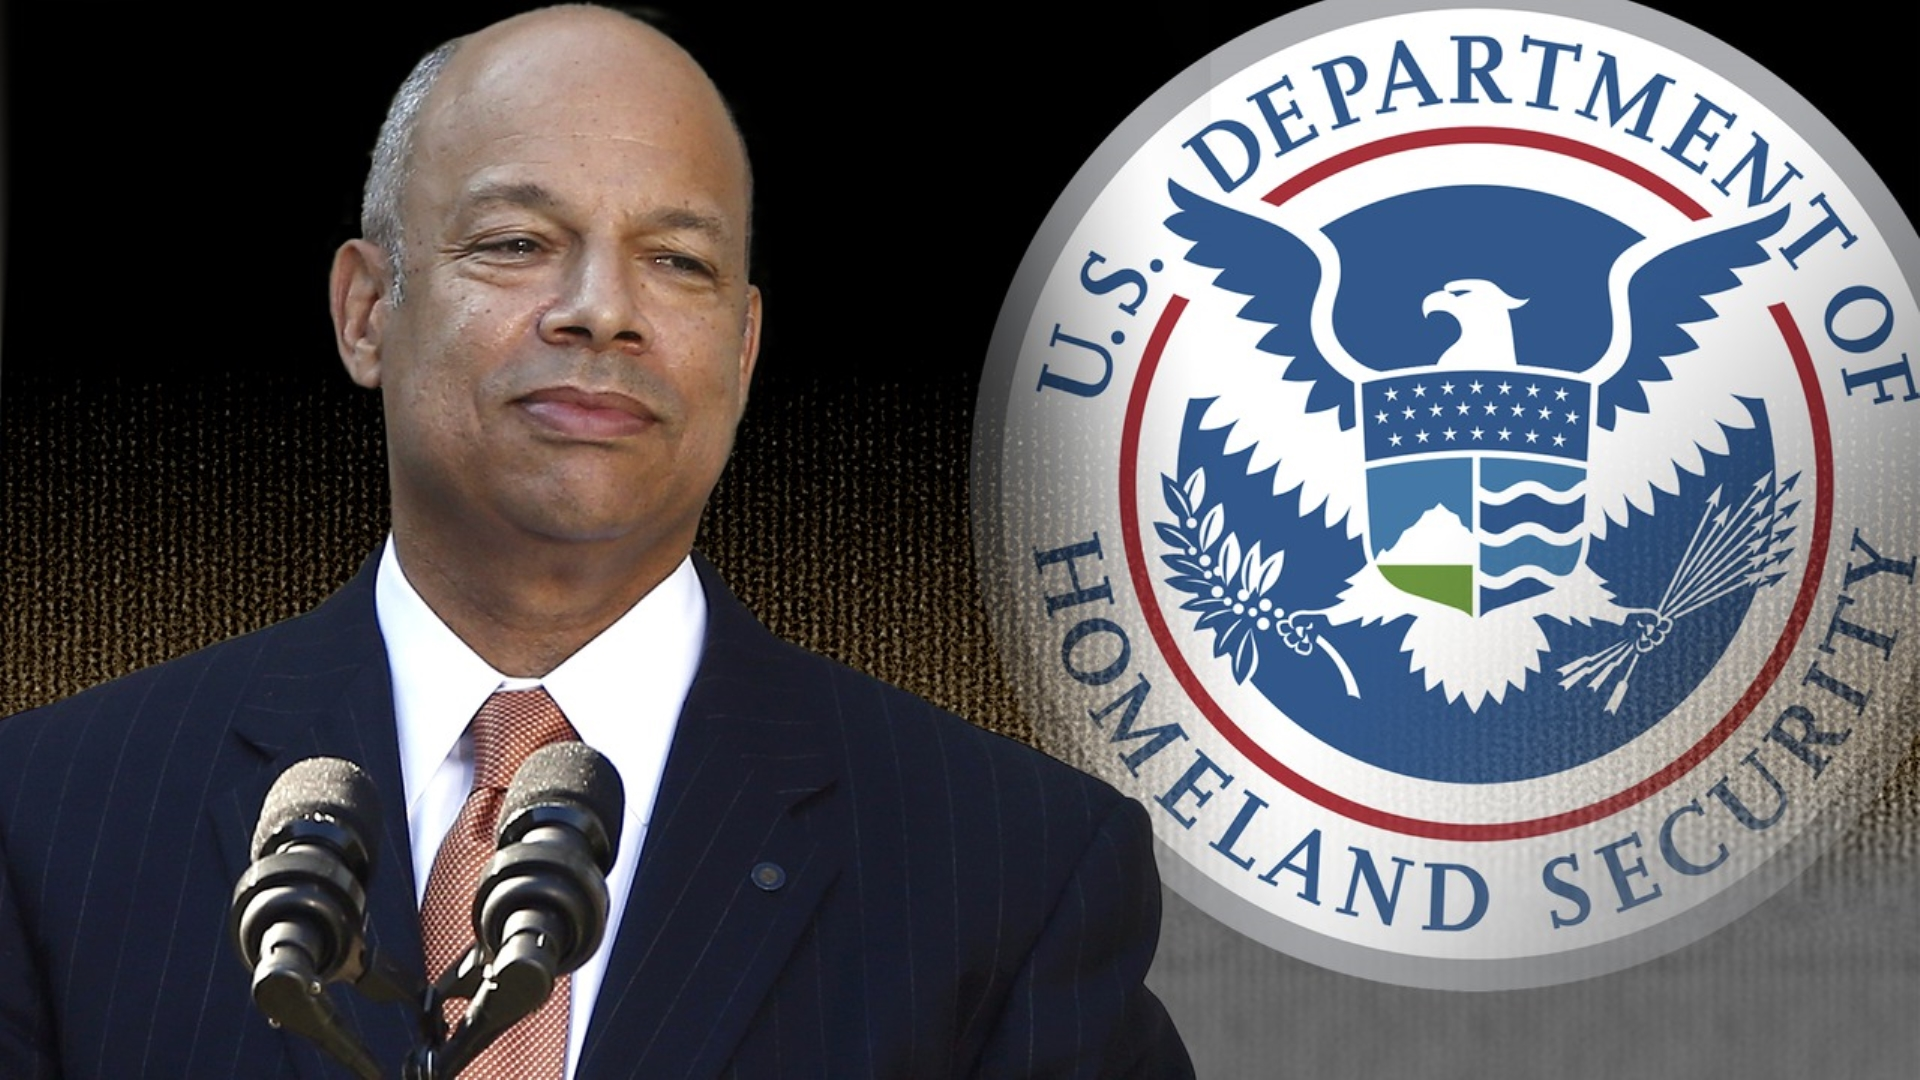 Homeland Security: No Credible Super Bowl Threat